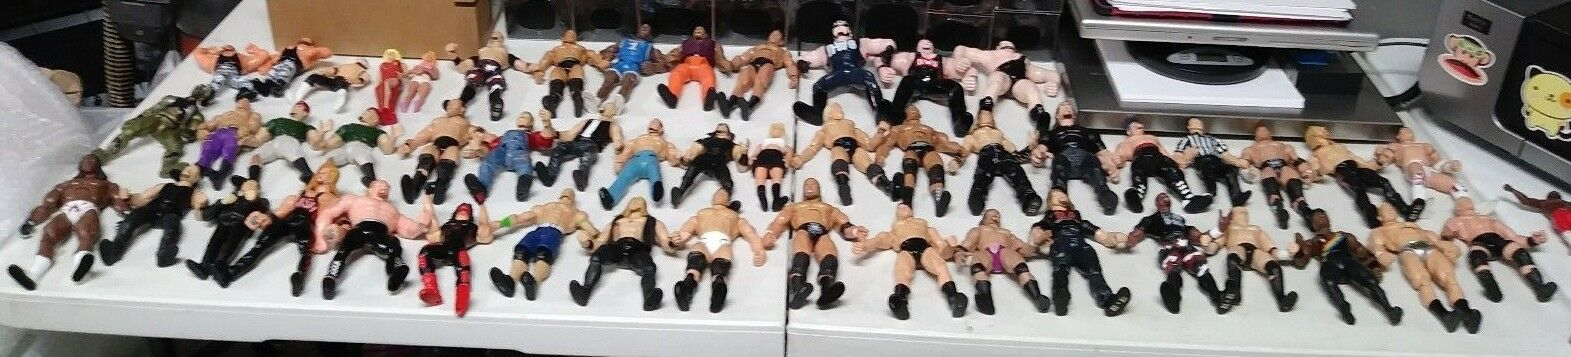 Lot Of 66 Wrestling Action Figures Jakks Etc. Late Late Late 1990s To Mid 2010s WWE WWF e95412